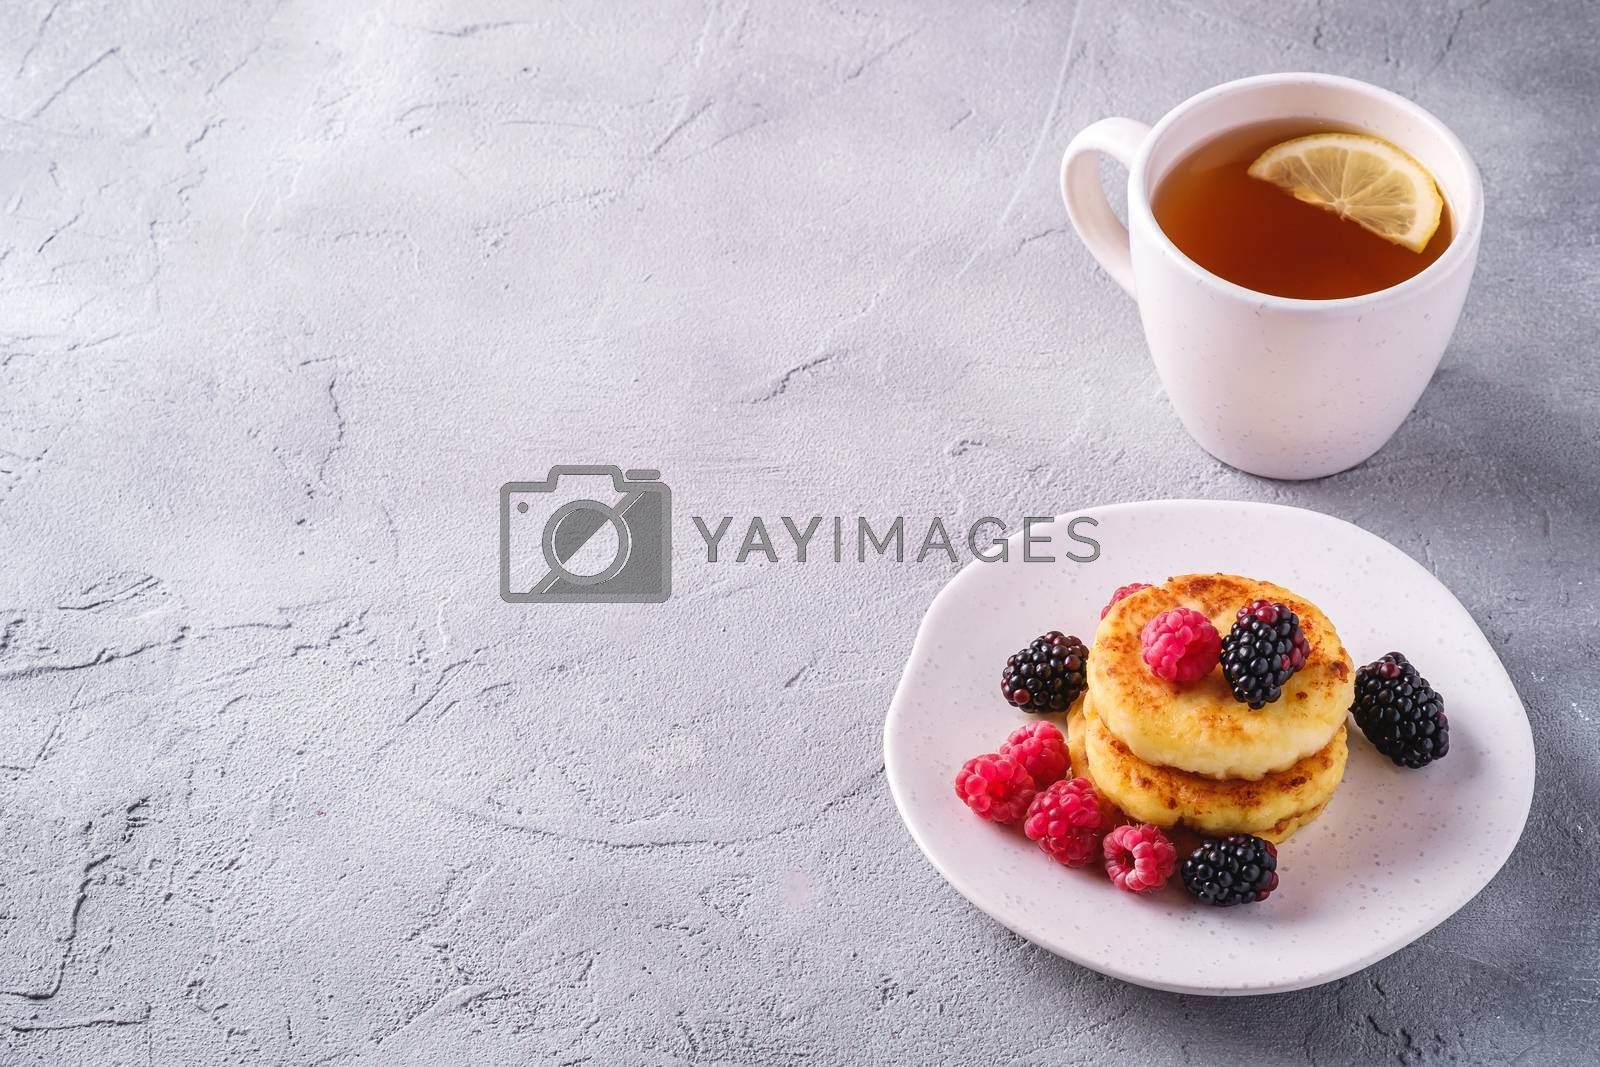 Cottage cheese pancakes, curd fritters dessert with raspberry and blackberry berries in plate near to hot tea cup with lemon slice on stone concrete background, angle view copy space